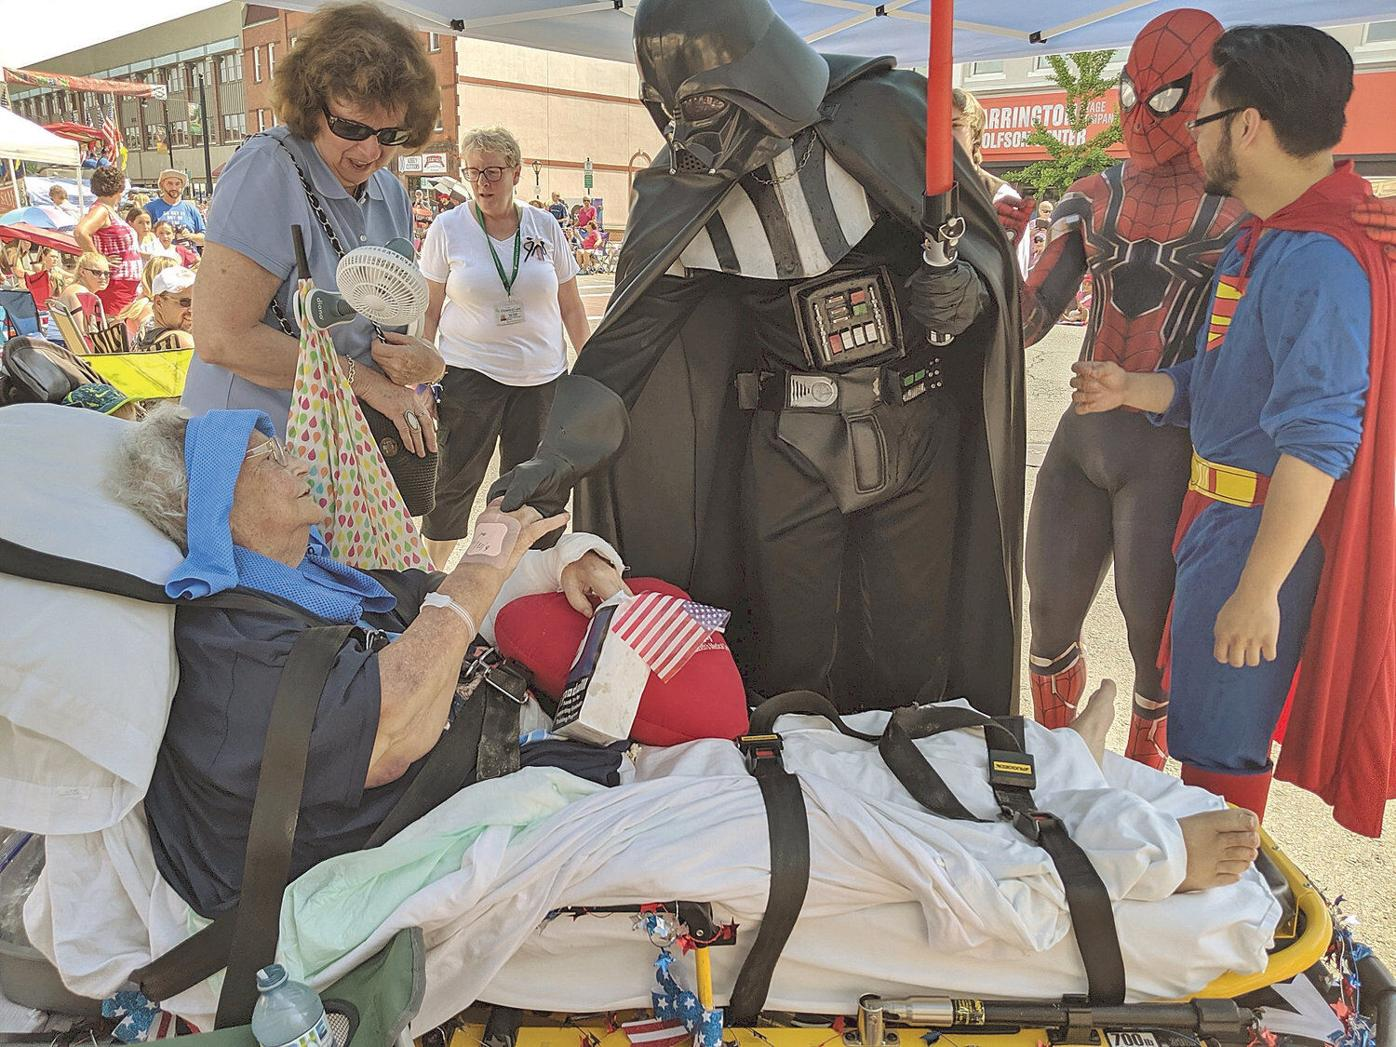 Dying woman gets wish to watch Pittsfield parade where she met her husband decades earlier